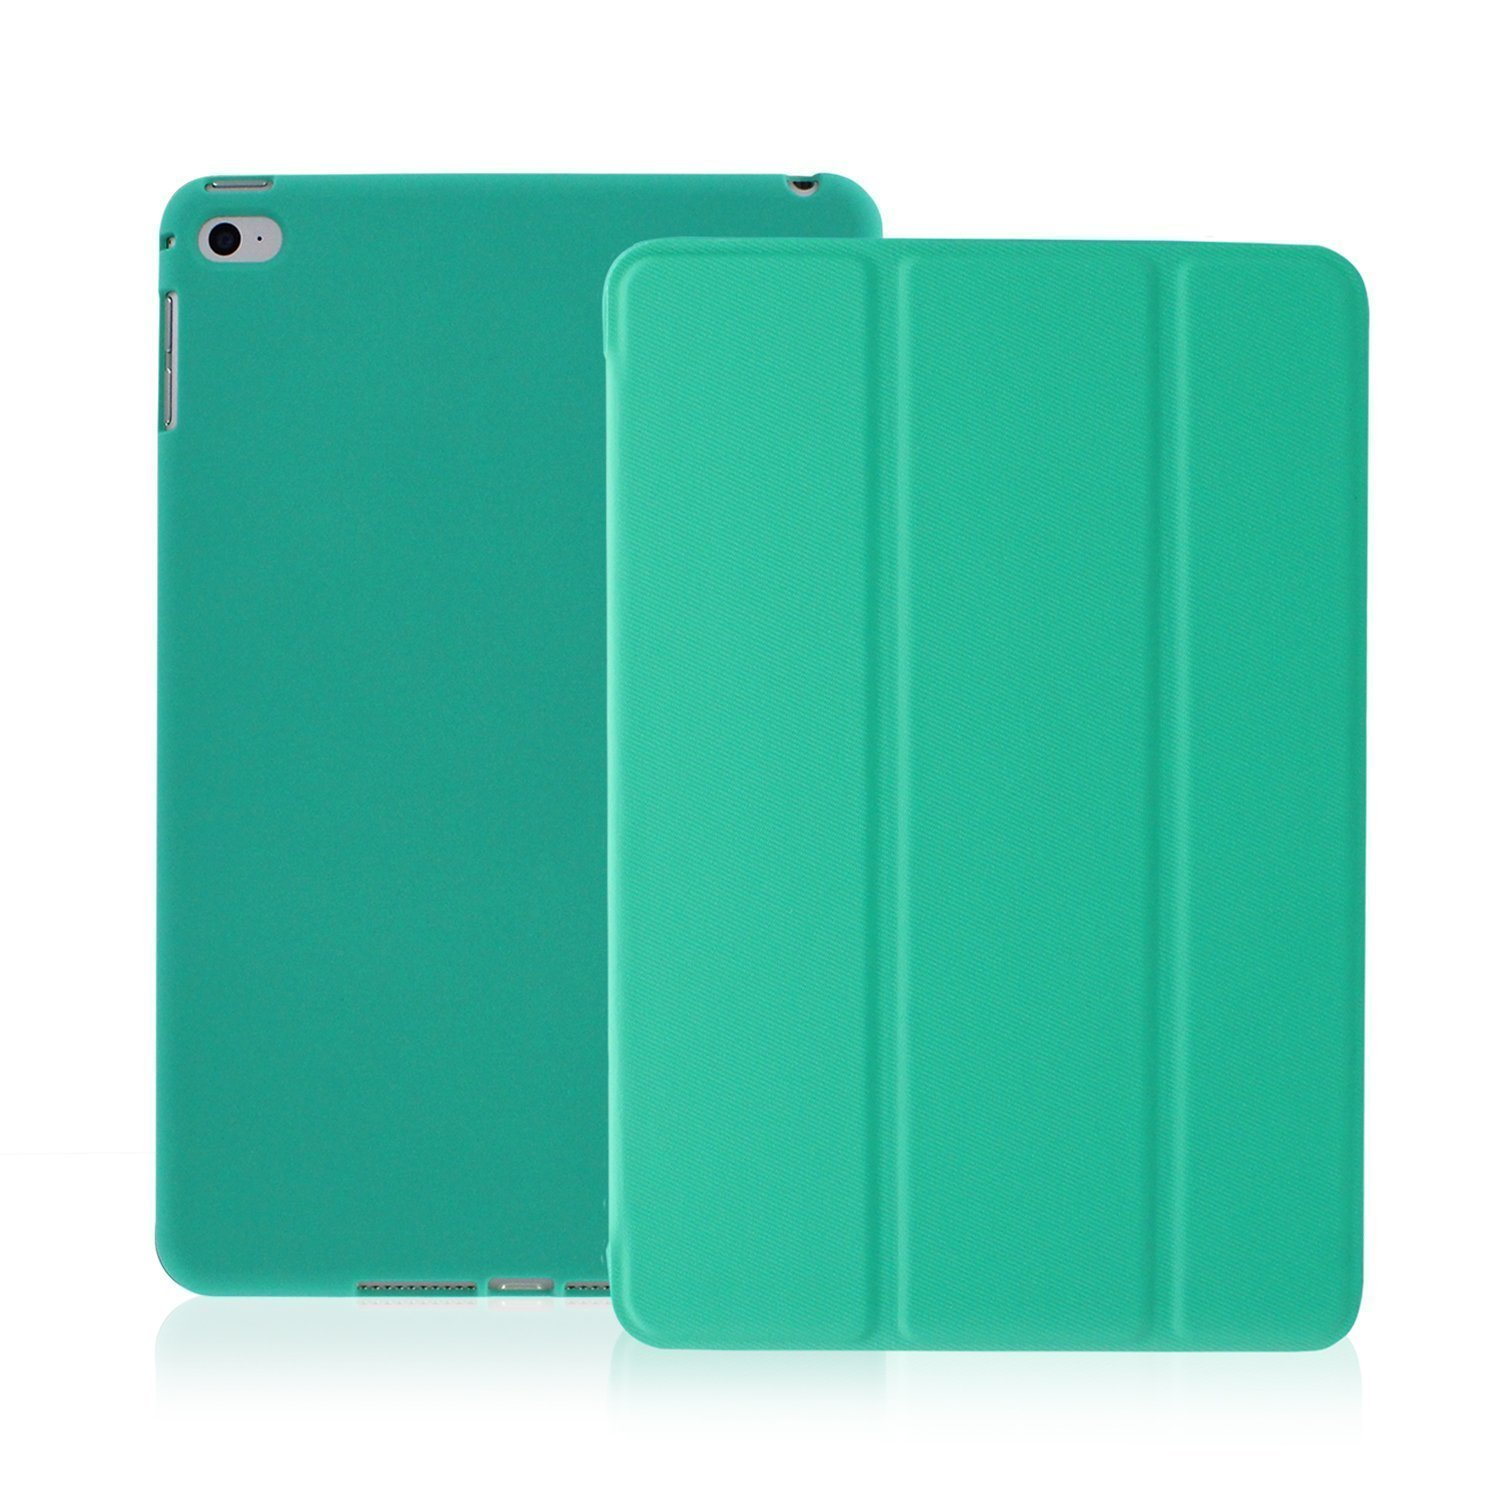 KHOMO iPad Air 2 Case - Dual Series - Ultra Slim Cover with Auto Sleep Wake Feature for Apple iPad Air 2nd Generation Tablet, Twill Green (ip-air-2-dark-green-2)